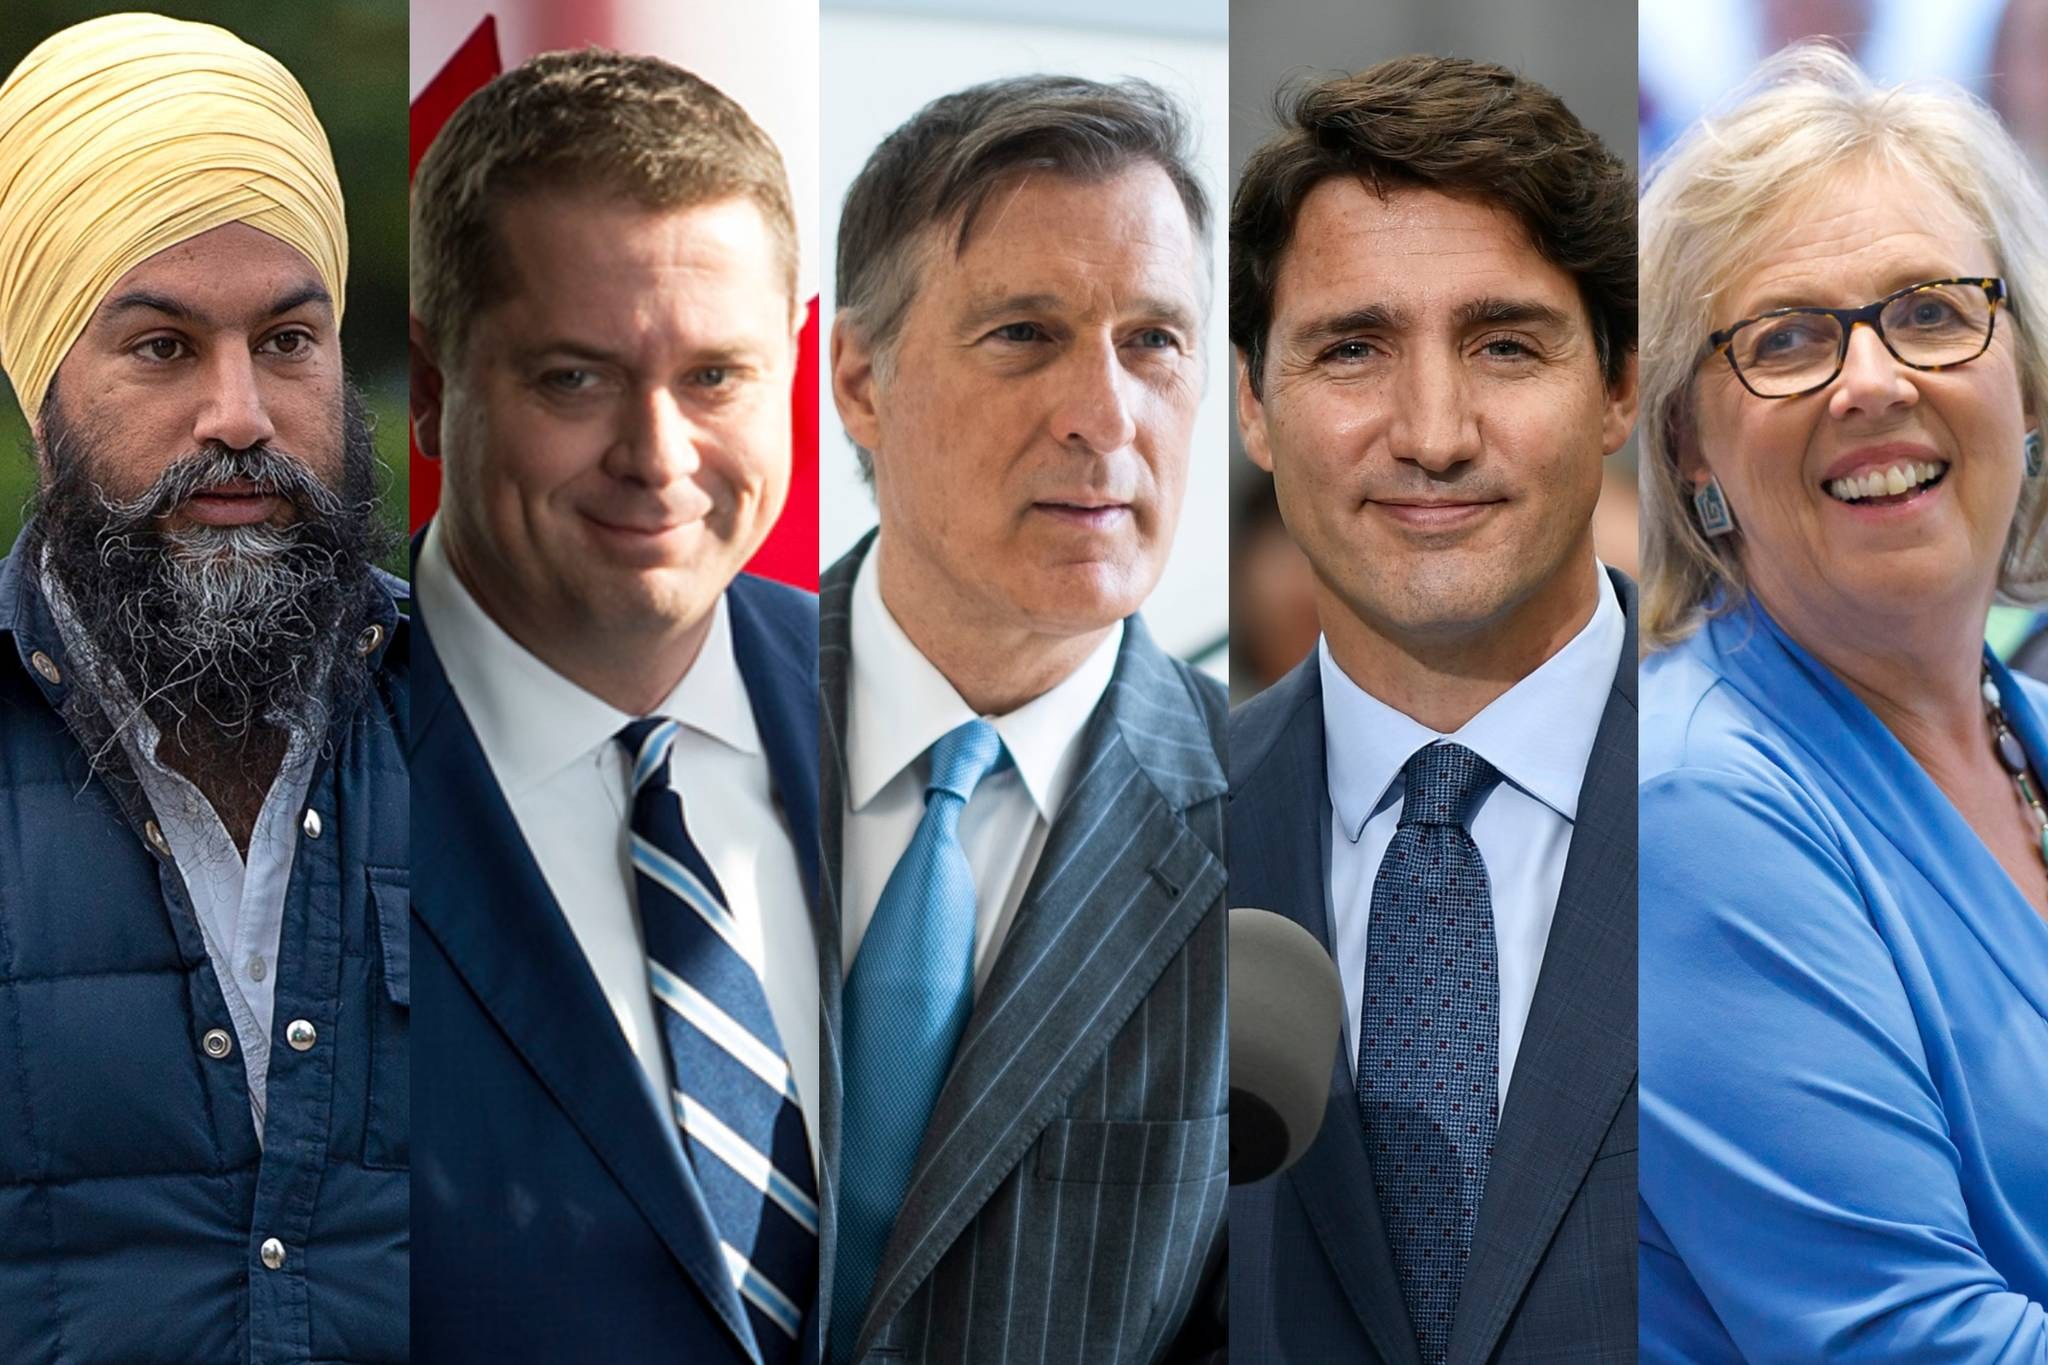 ELECTION 2019: Federal leaders hit final 24 hours of campaign